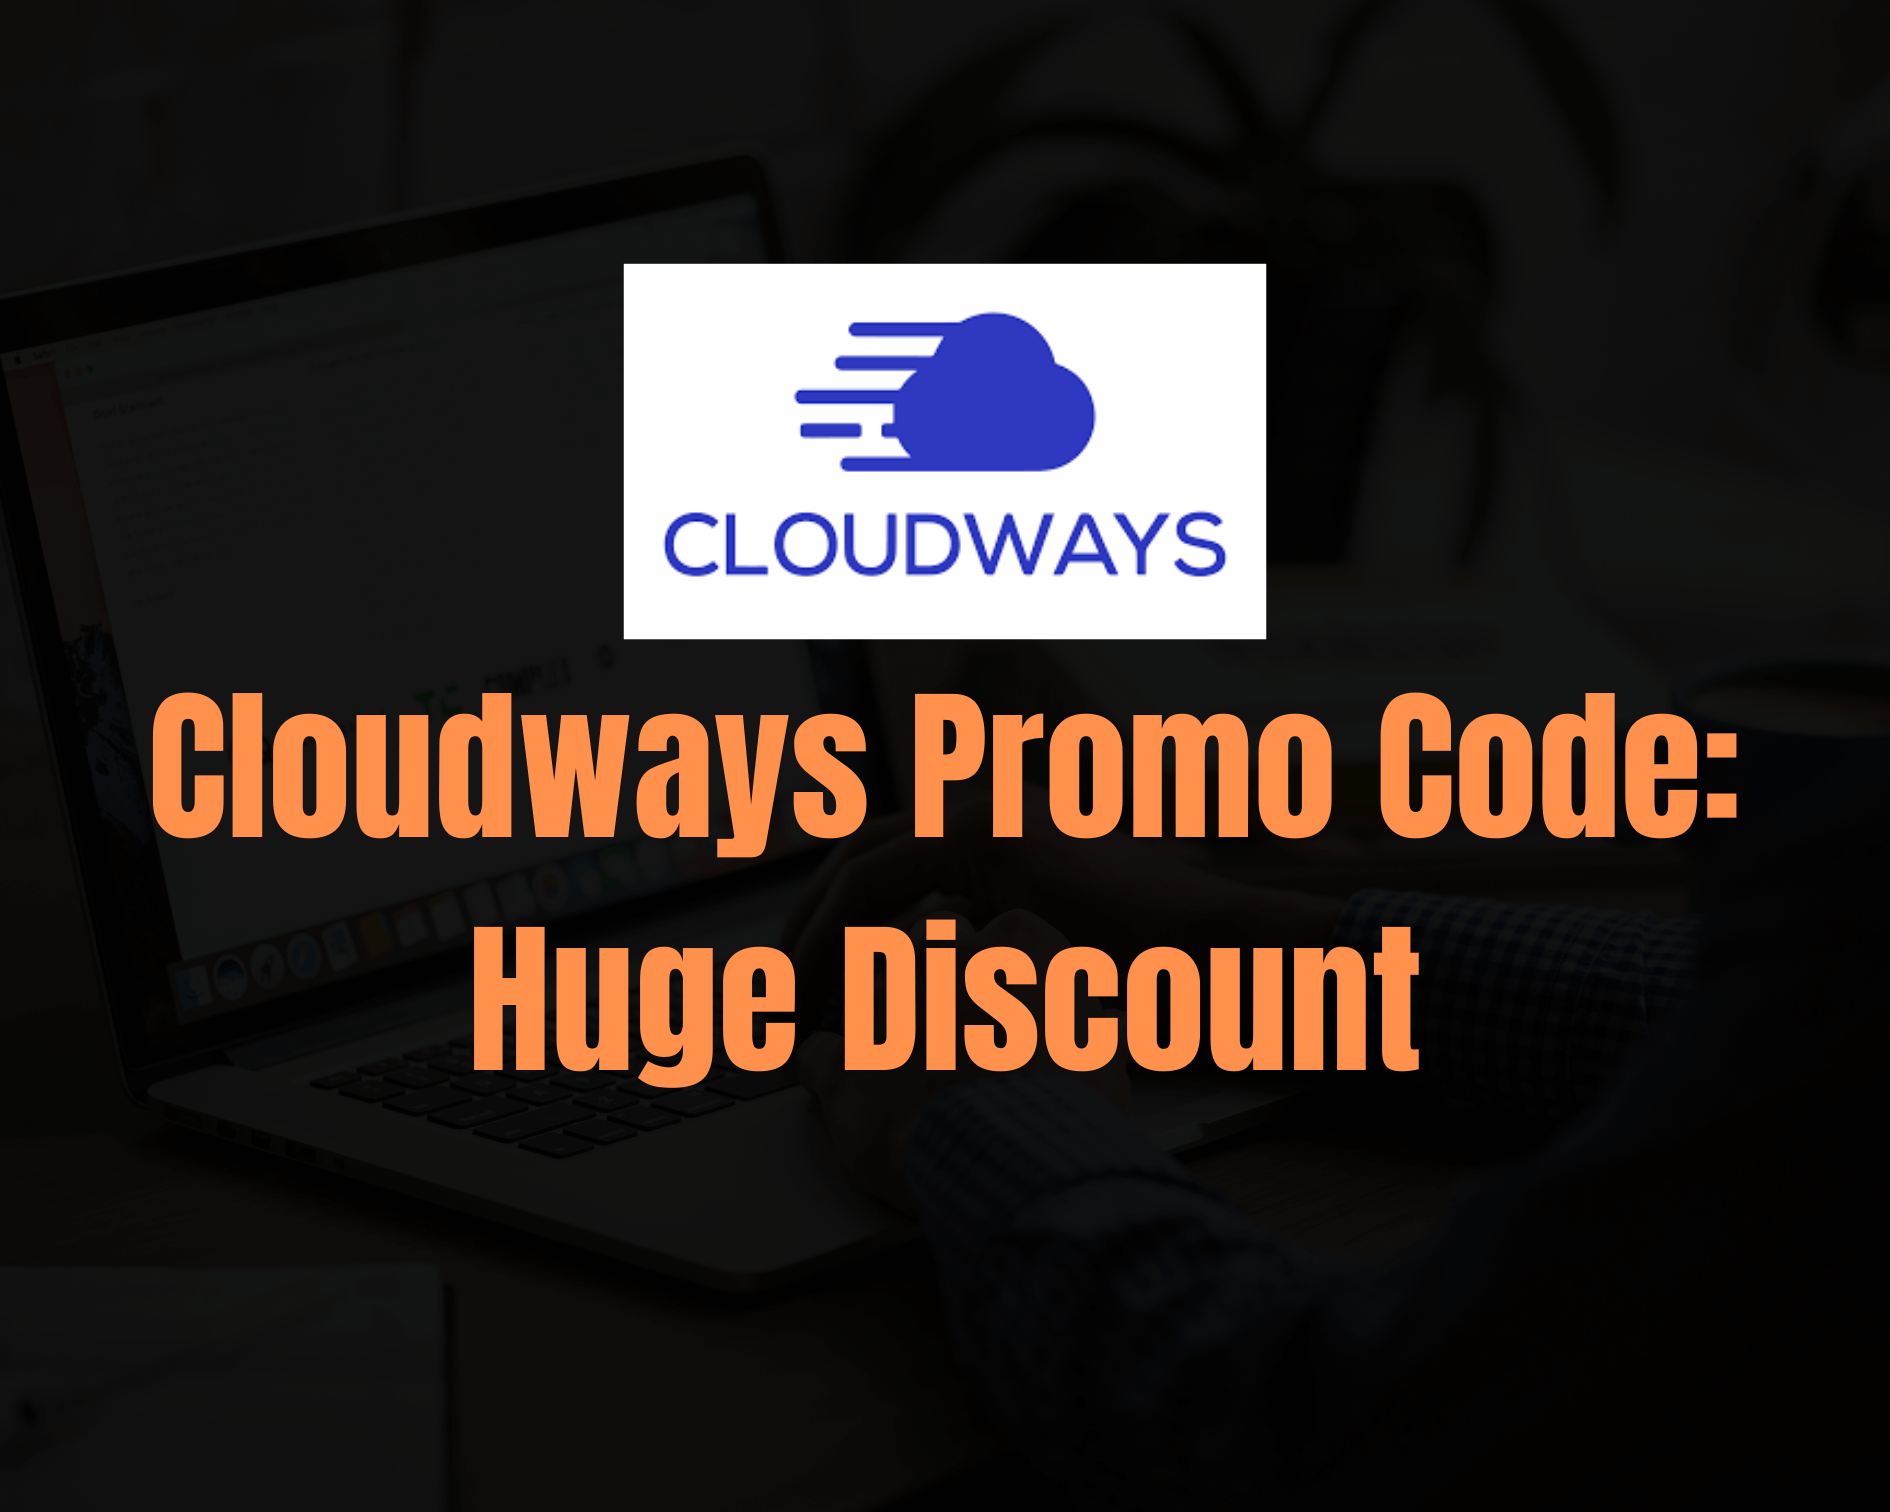 Cloudways Promo Code: Get 20% OFF + Free Hosting Trial